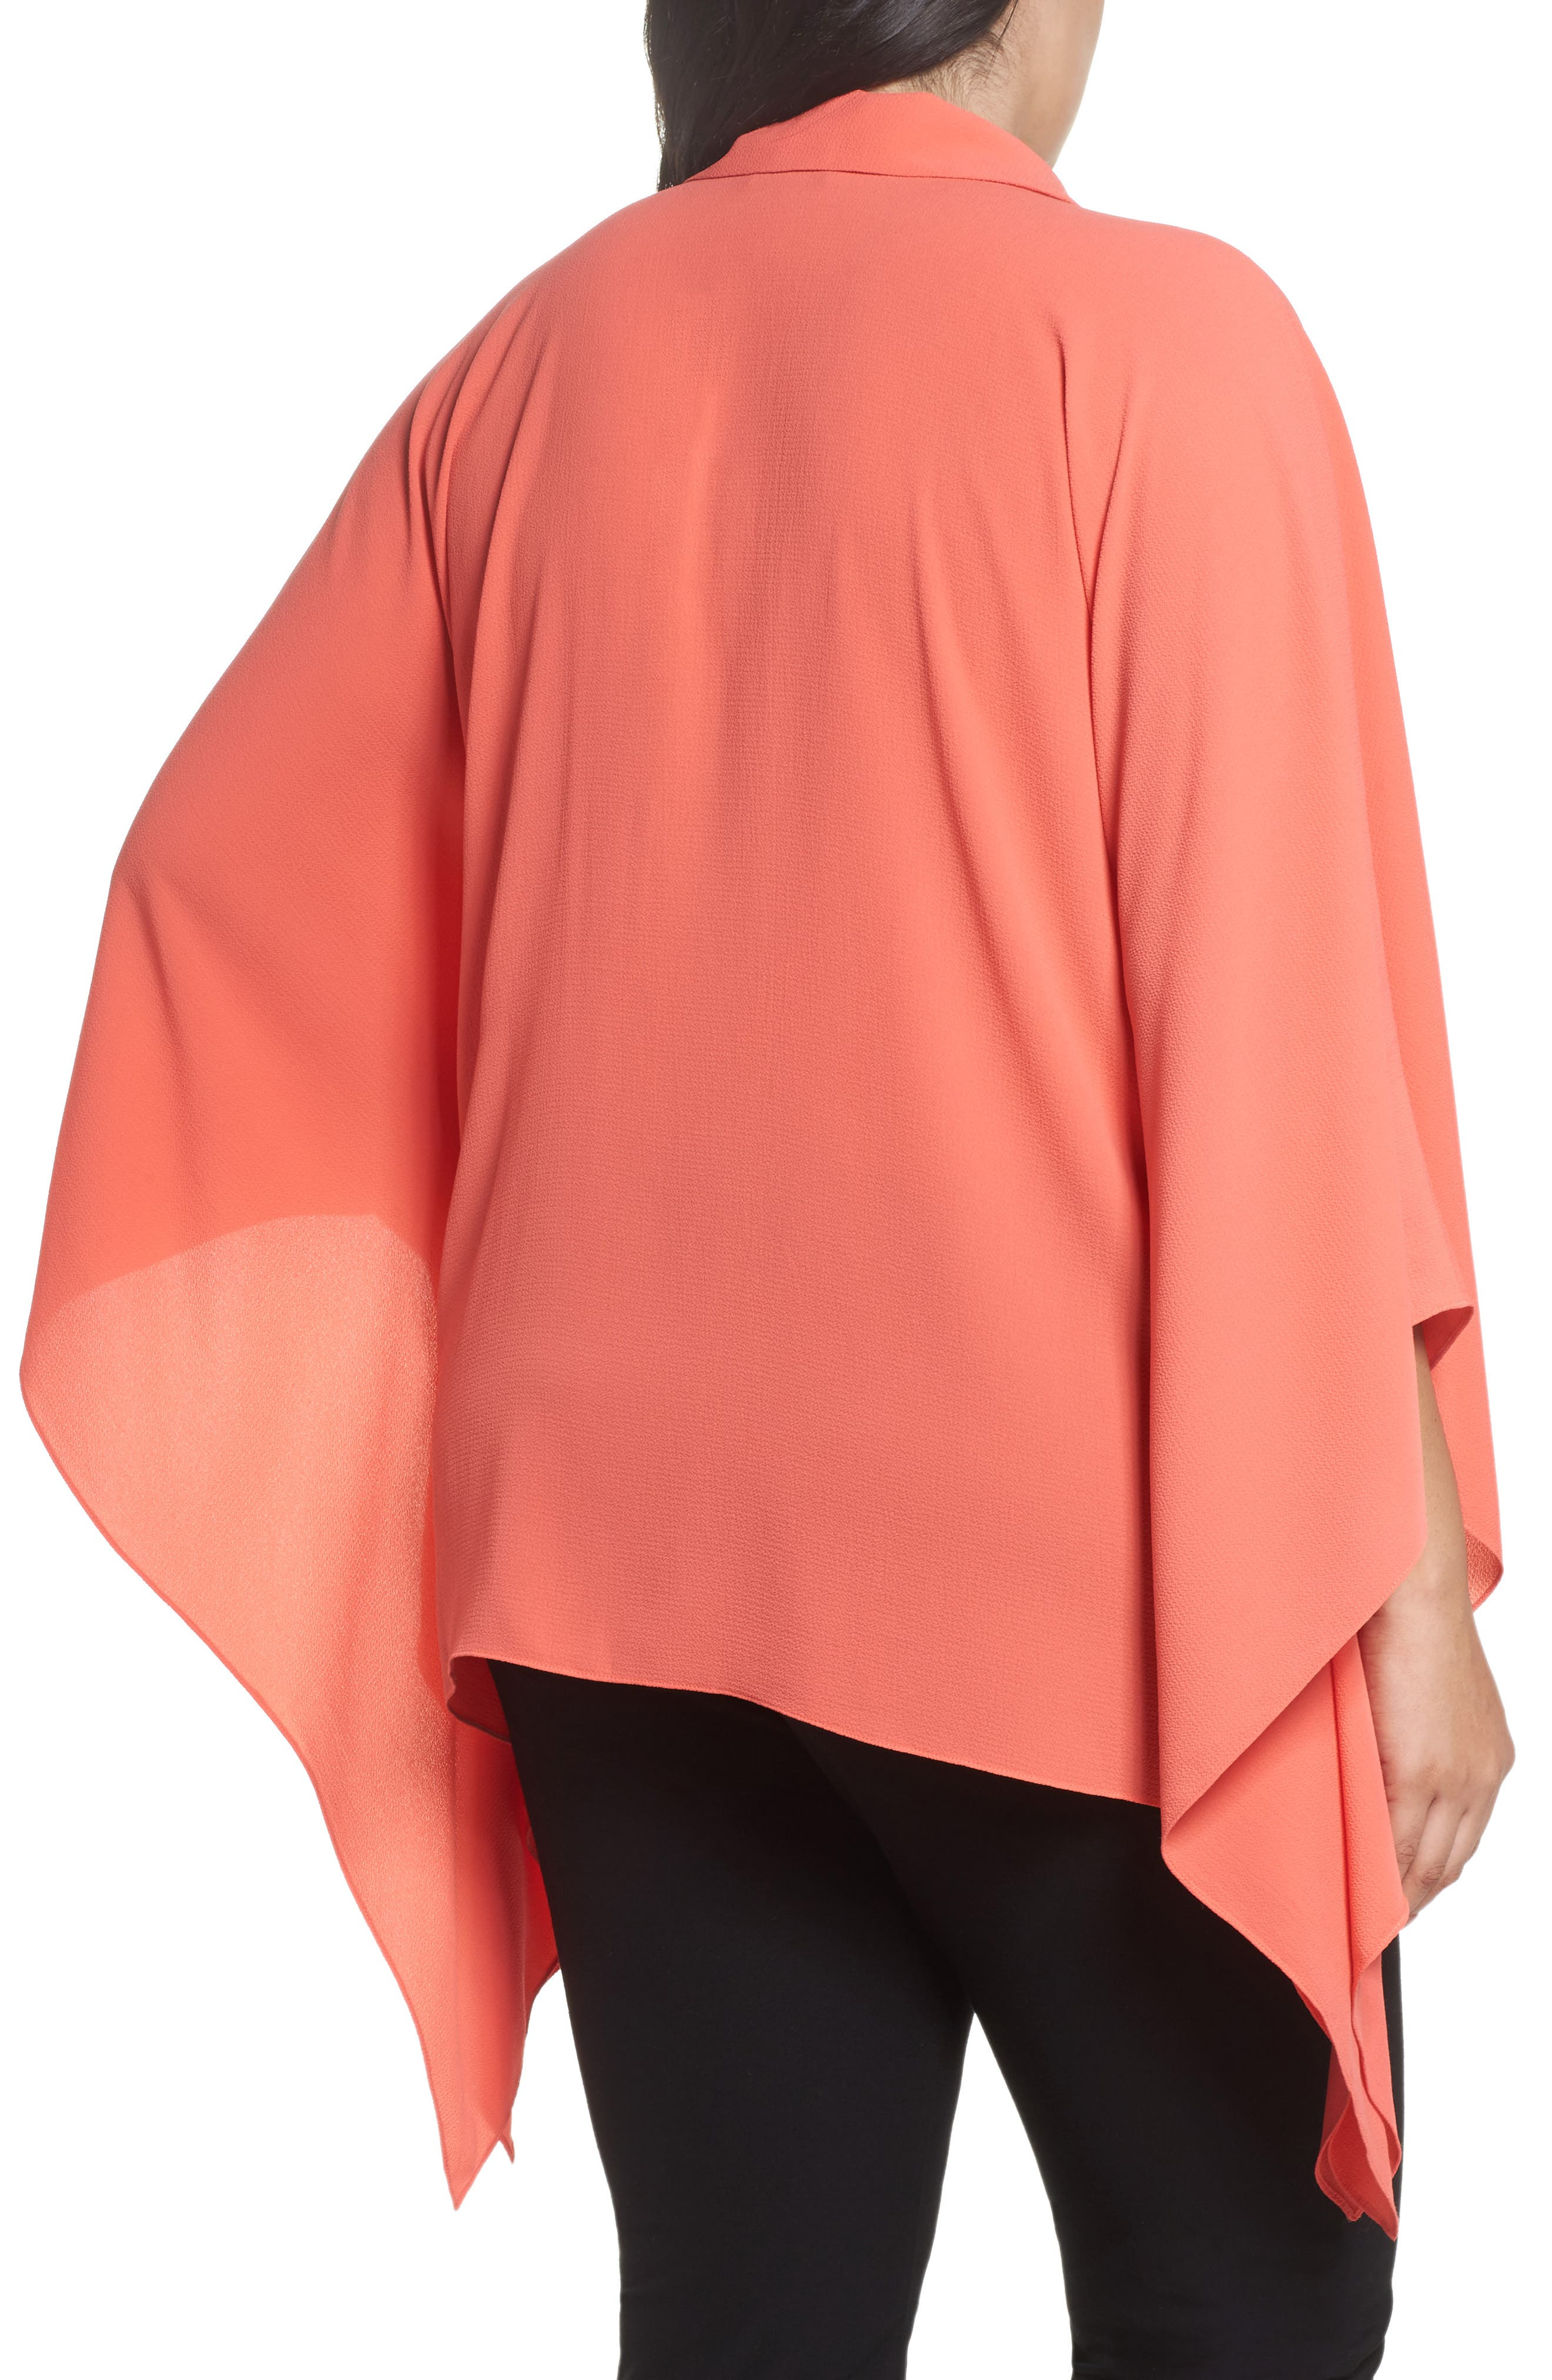 Alternate Image 2  - Vince Camuto Button Down Collared Poncho Top (Plus Size)